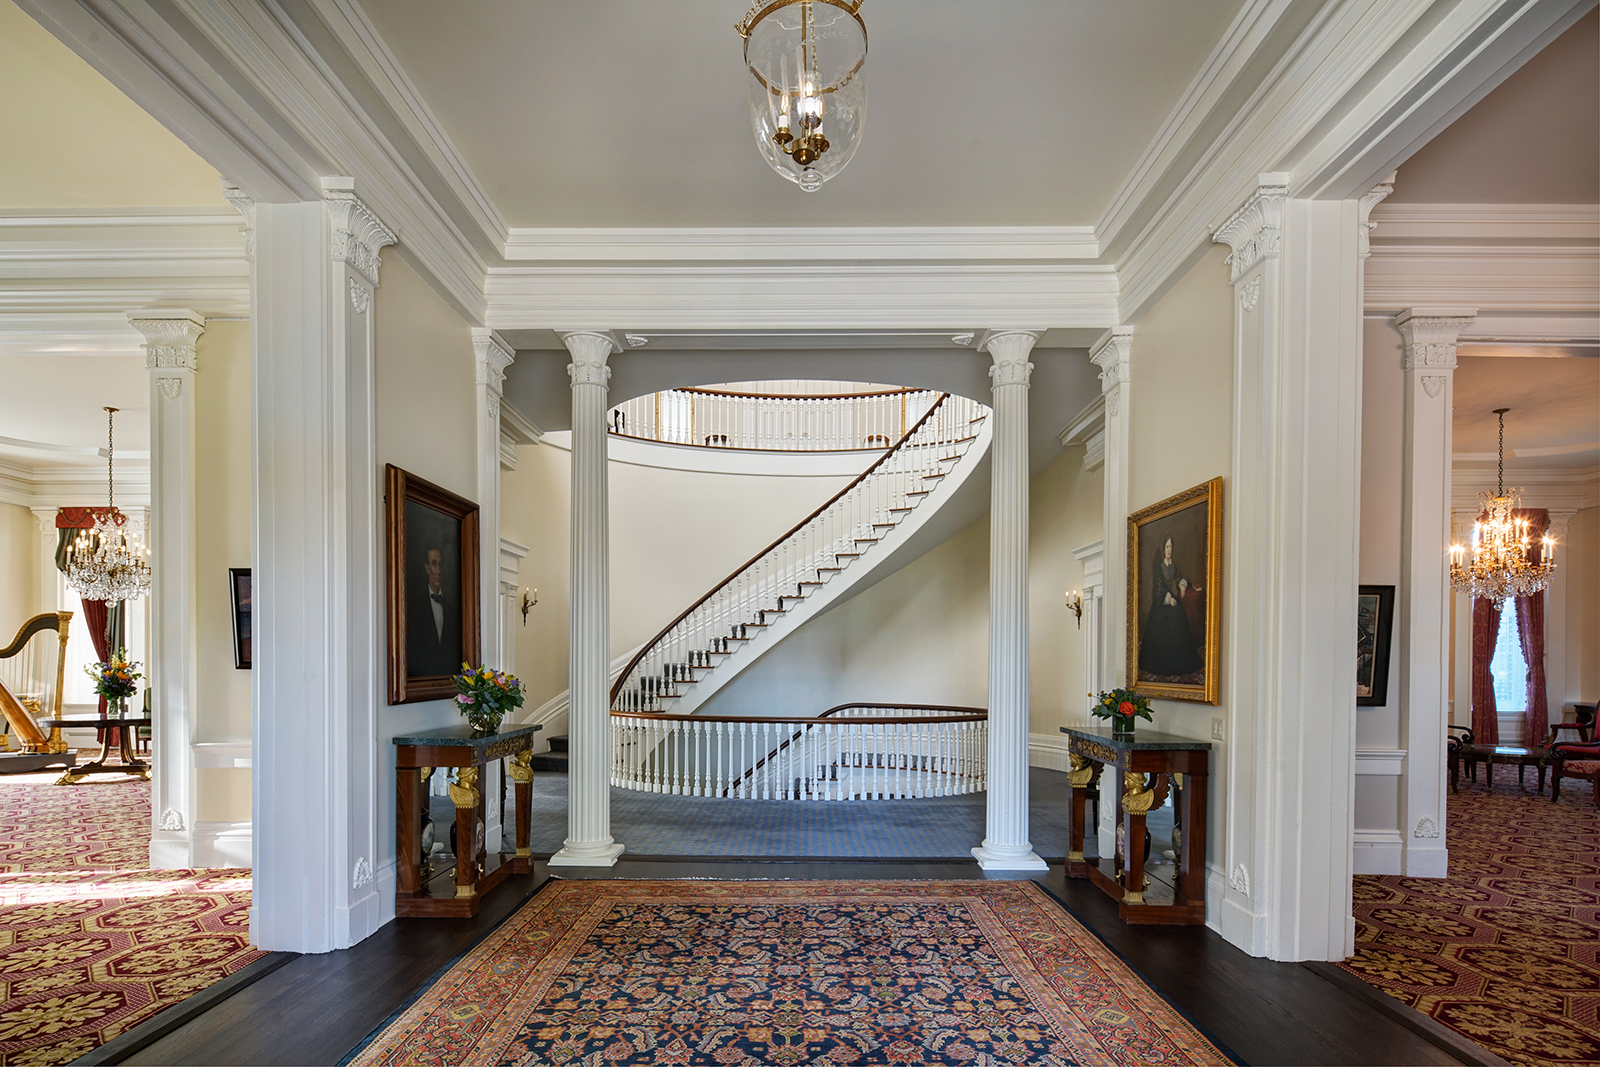 After $15 million update, the Governor's Mansion closes for more renovations